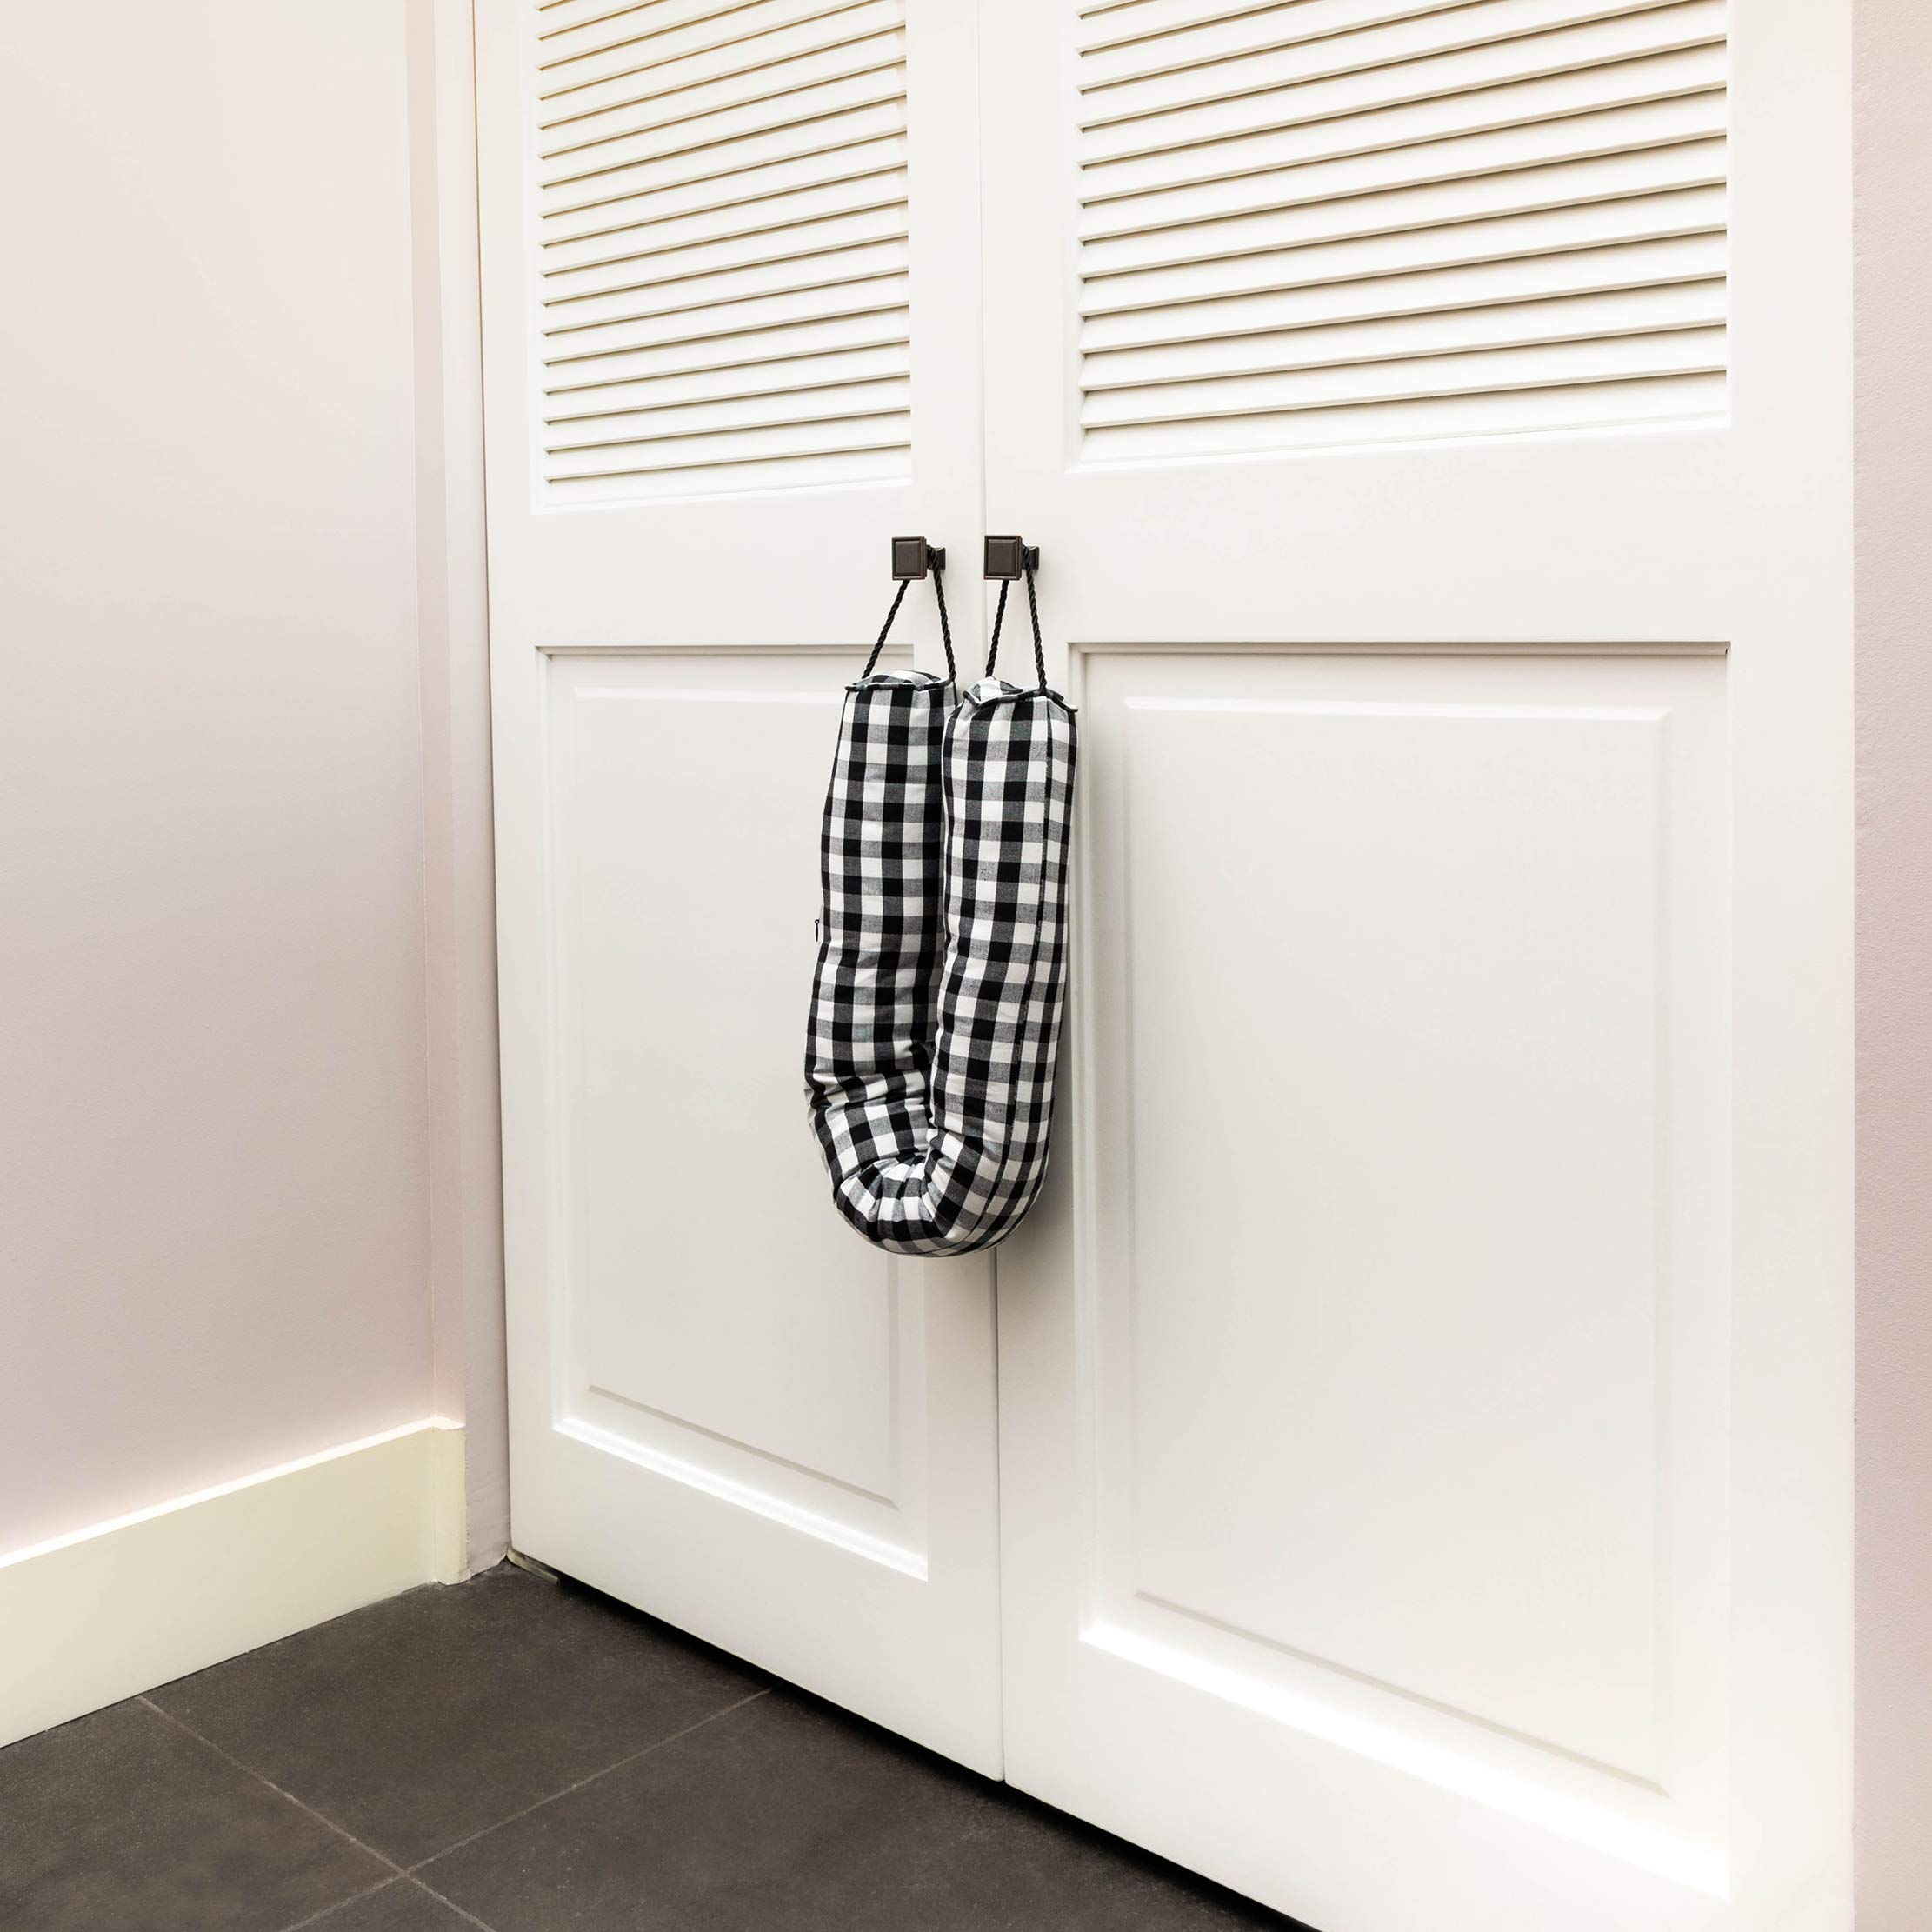 3.3 Lbs, 33.5 Inches Weighted Heavy Duty Sand Door Stop Black Draft Stopper